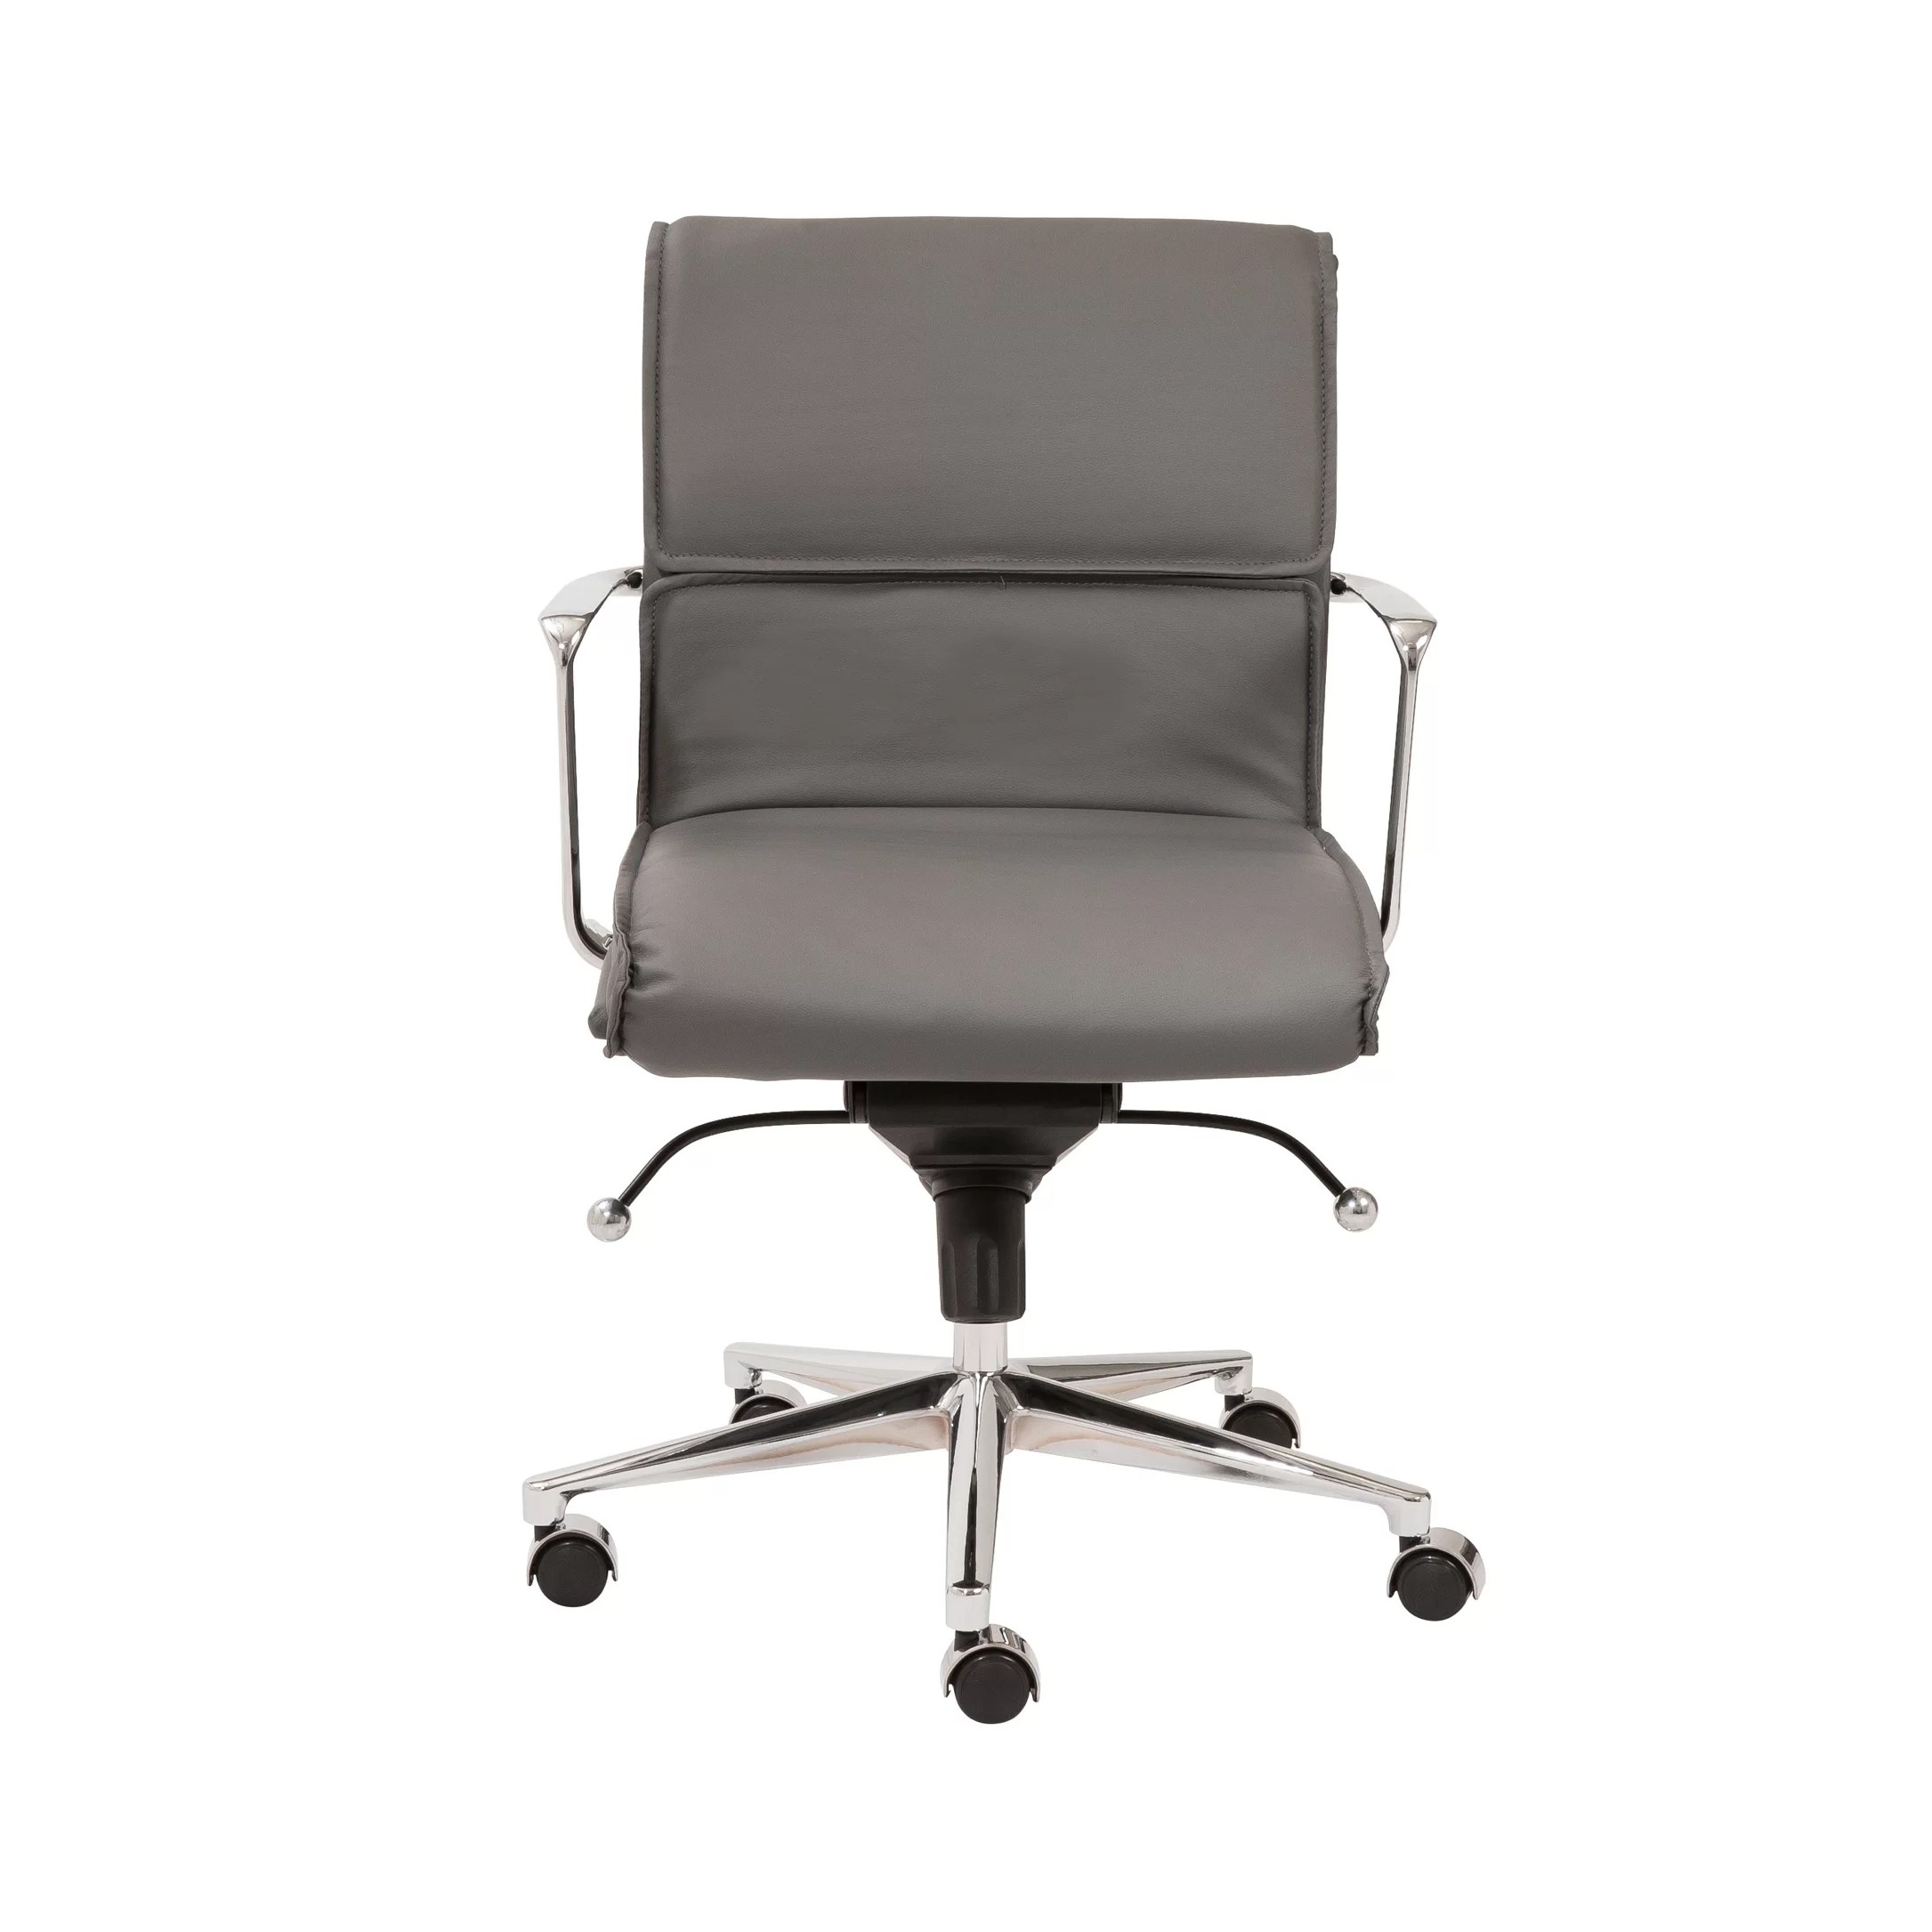 Office Chair With Arms Eurostyle Leif Low Back Leatherette Office Chair With Arms